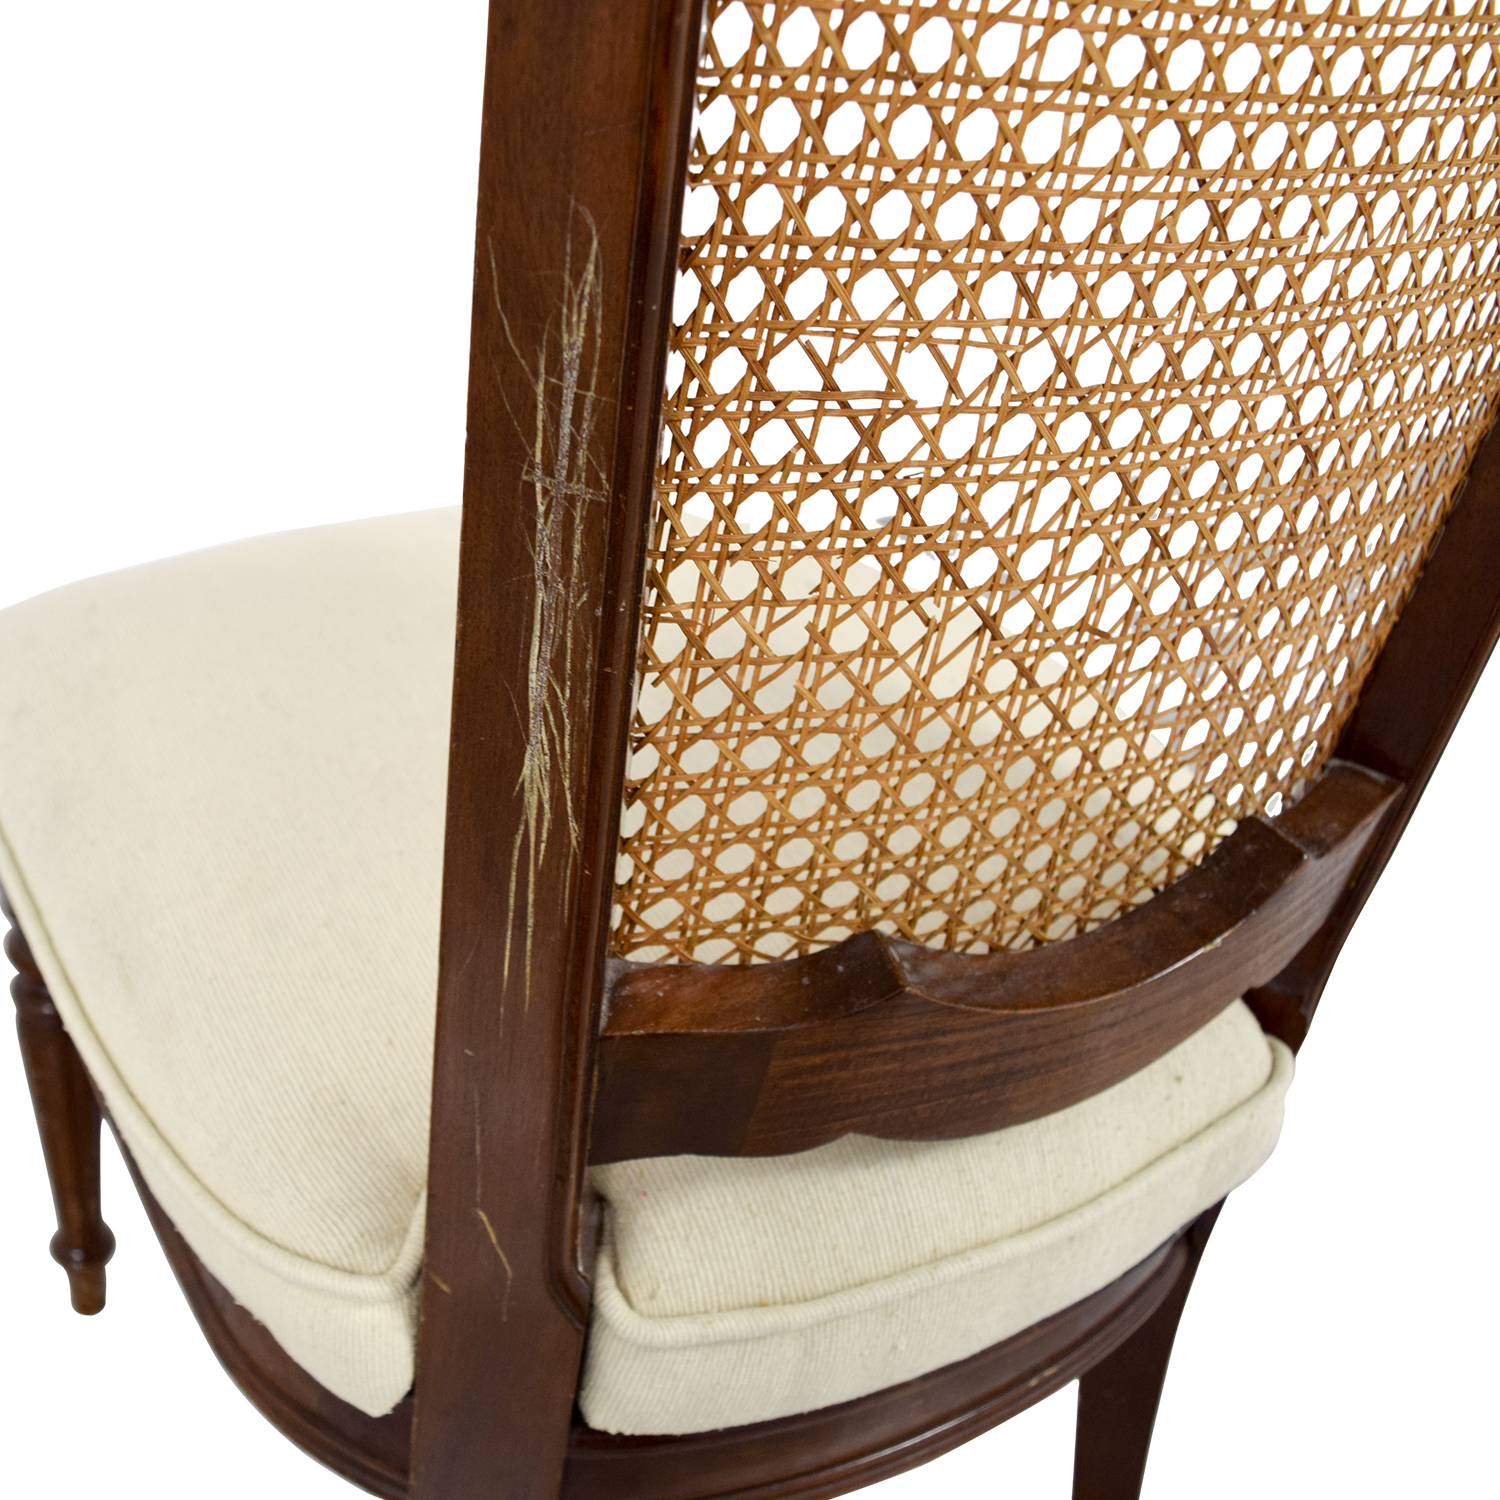 ... Beige Cain Webbing Back Country Chair Second Hand